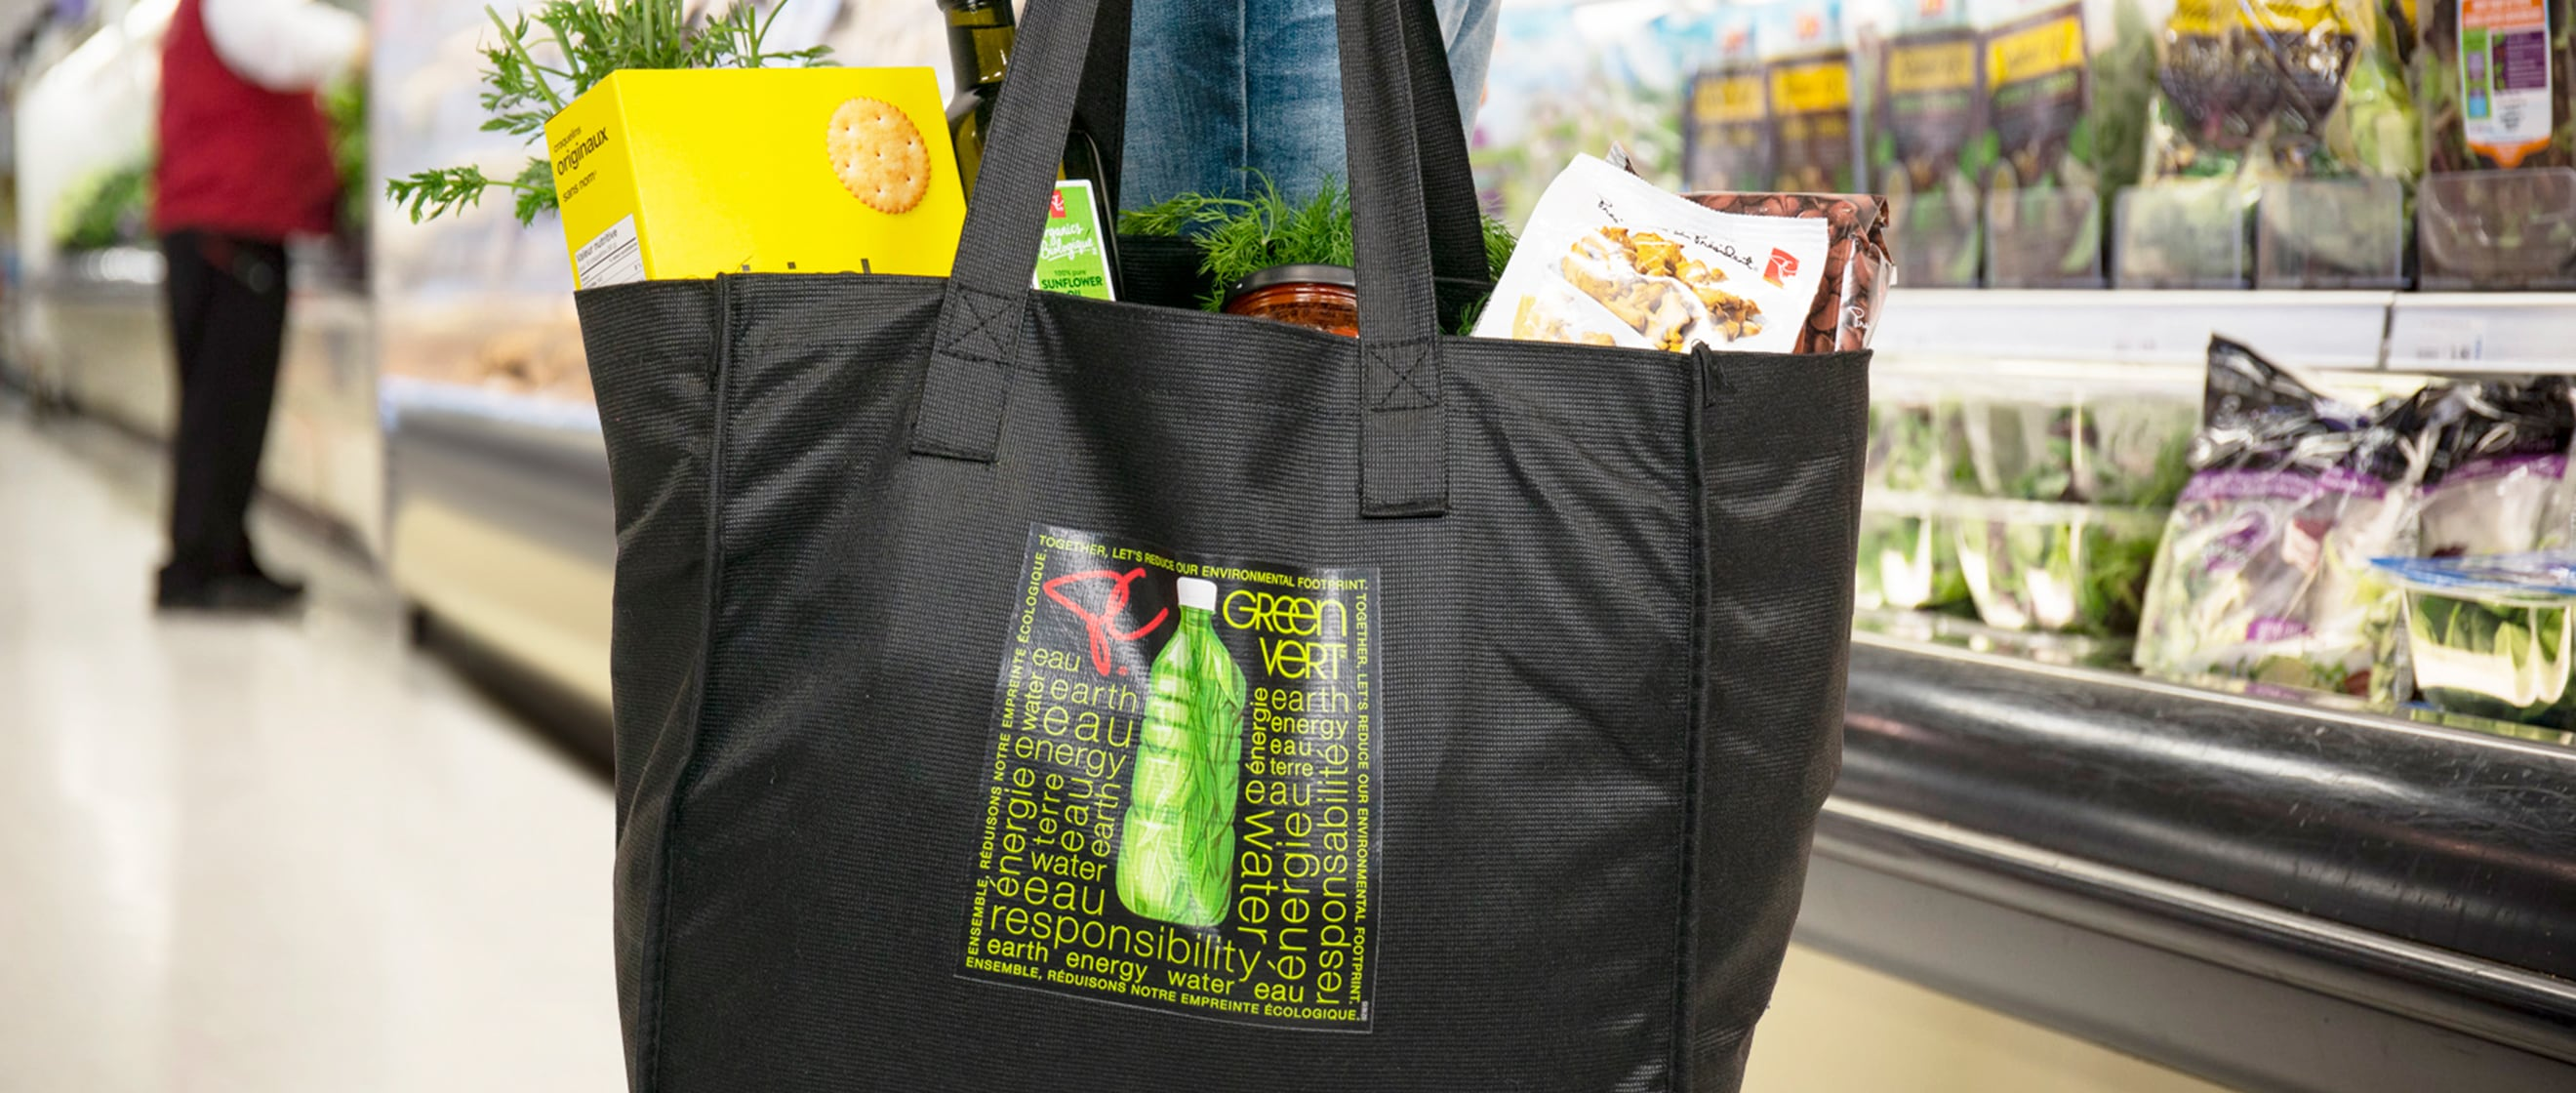 Shopper holding a reusable black bag back with groceries in it.